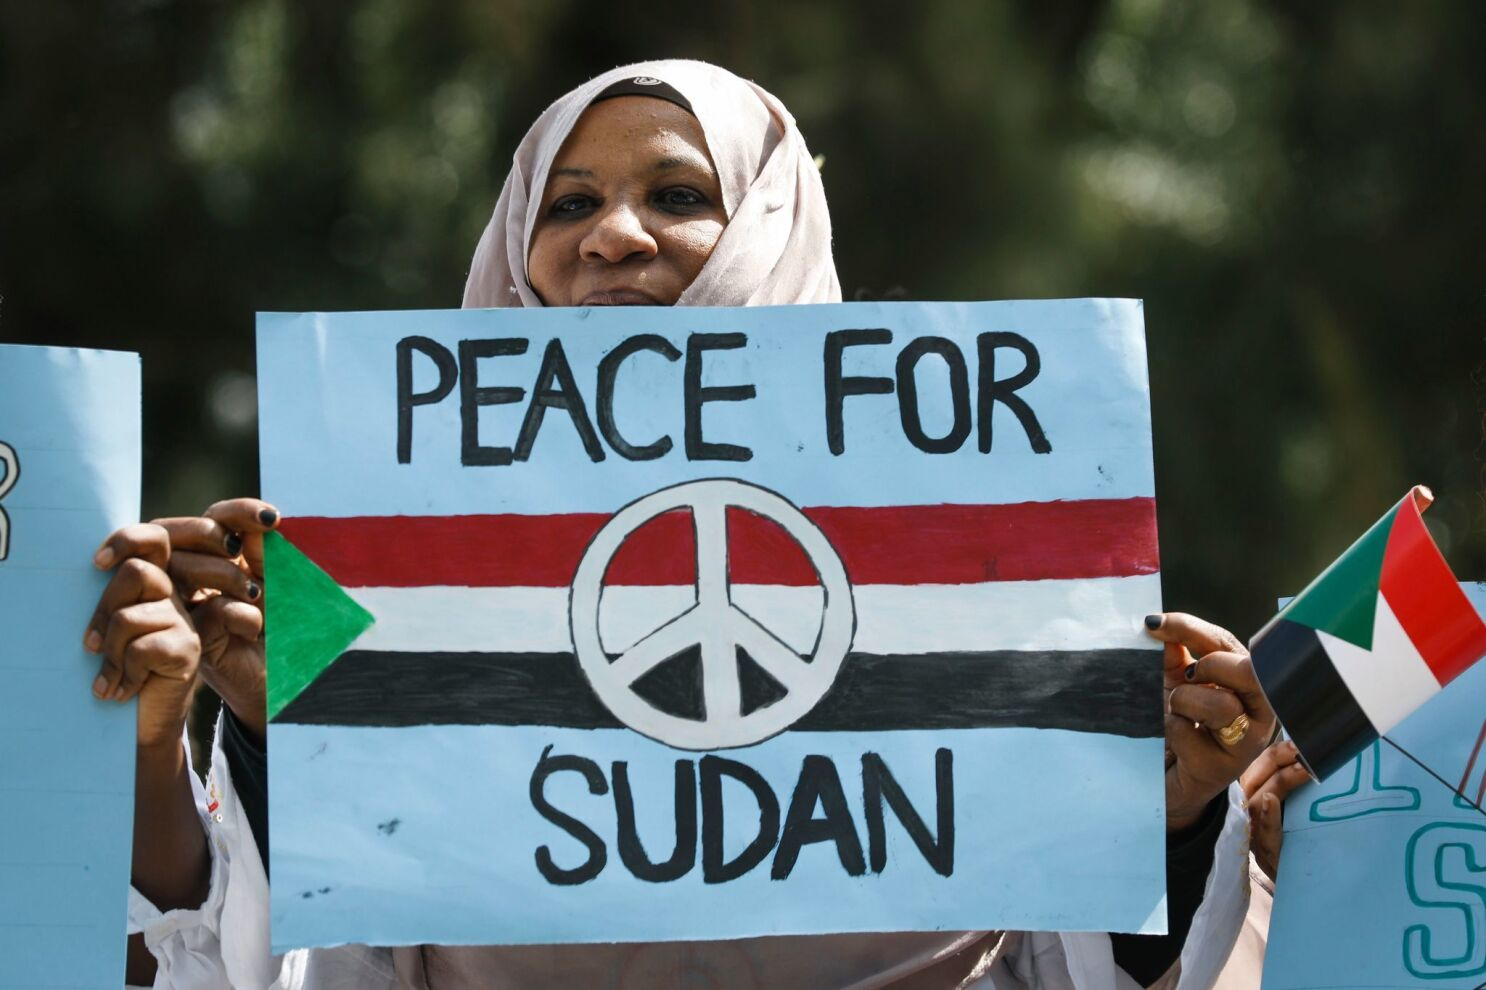 Sudanese military and protesters sign power-sharing document - Los Angeles Times